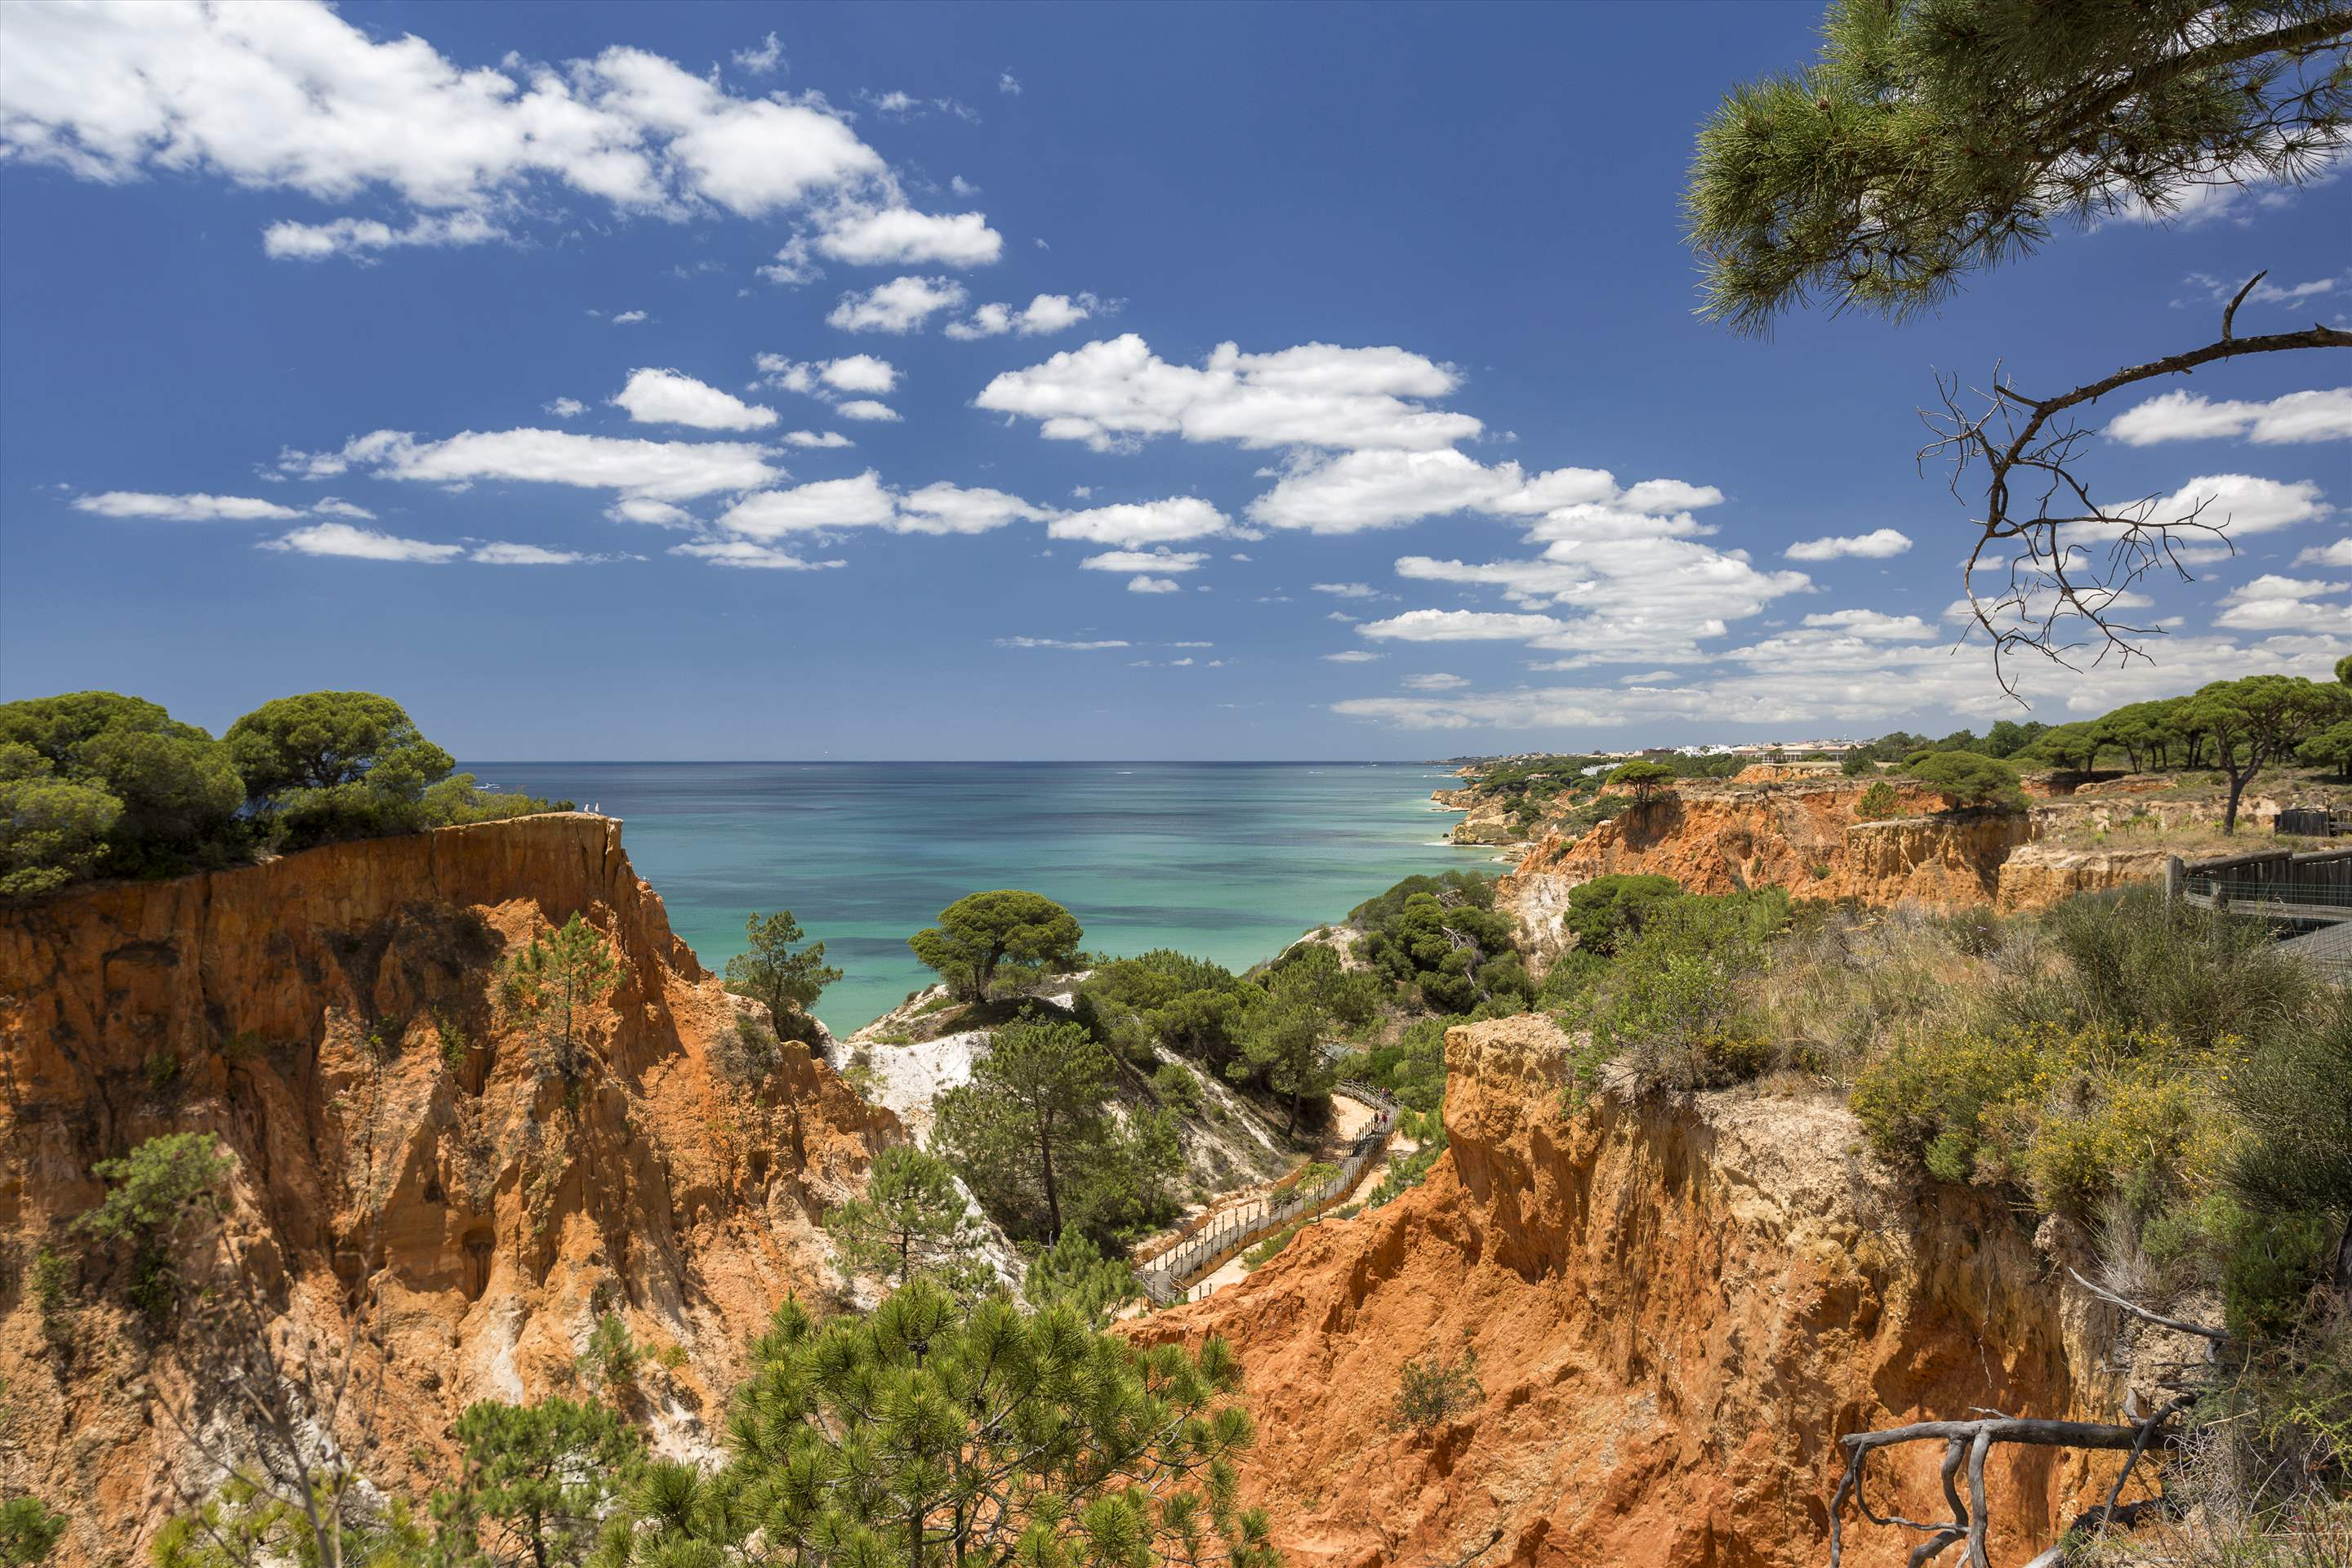 Pine Cliffs Terraces, 4 Bedroom, room only basis, 4 bedroom villa in Pine Cliffs Resort, Algarve Photo #20